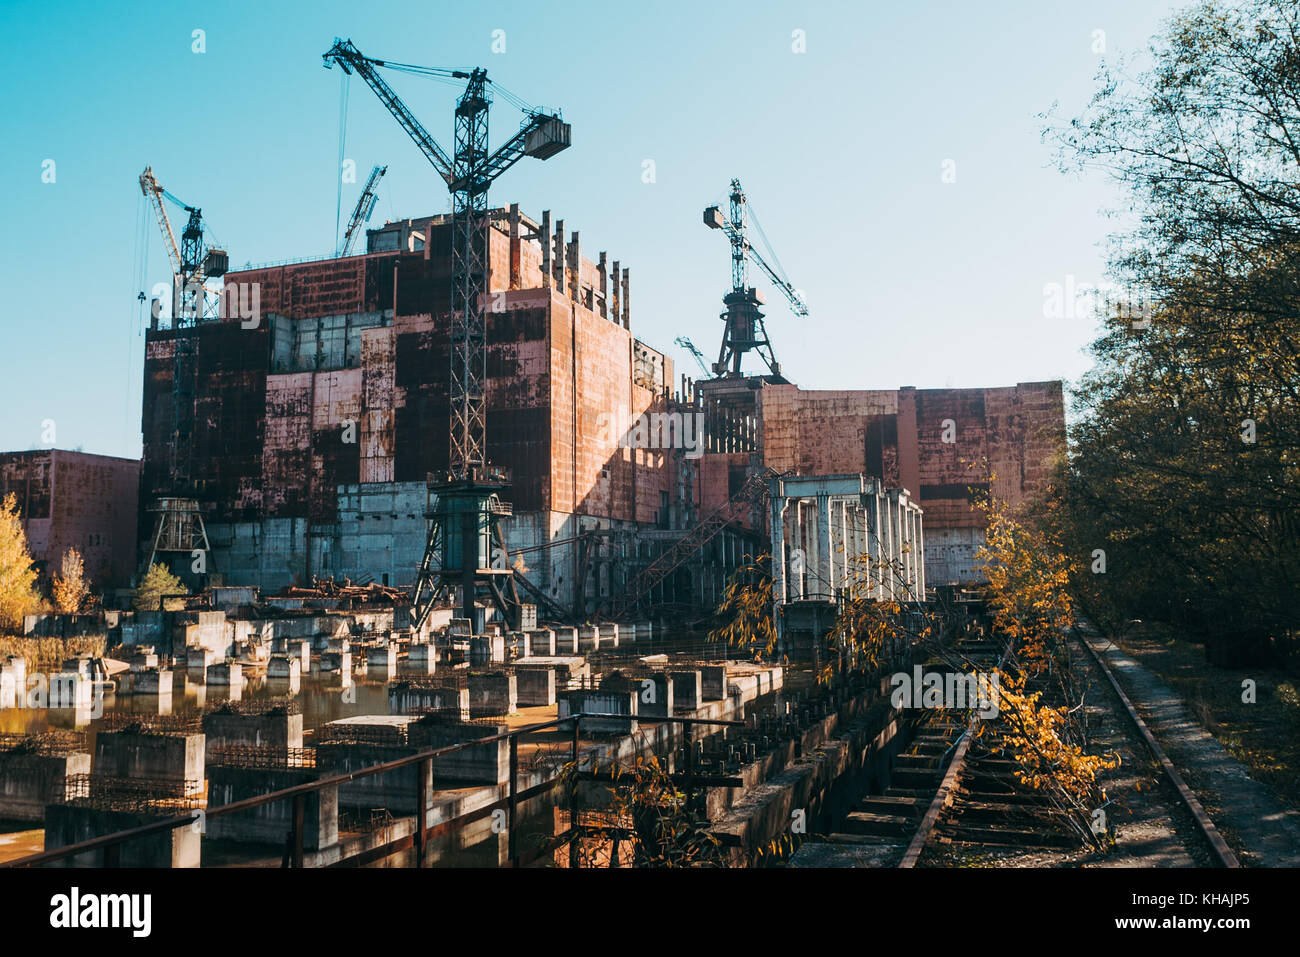 An incomplete building construction lies in ruins near the Chernobyl power plant, Ukraine - Stock Image